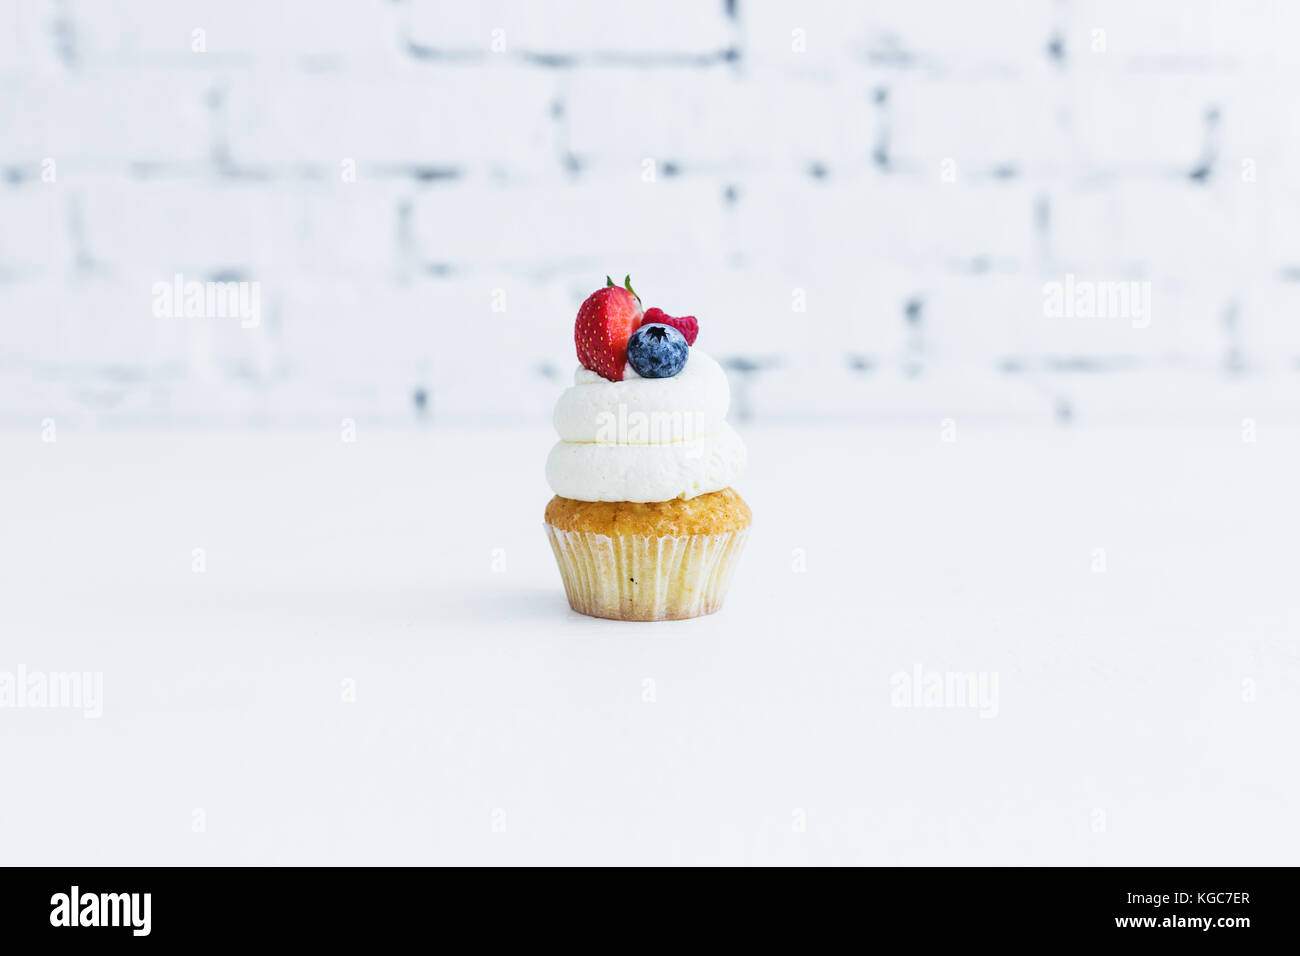 Honey capcake with mascarpone cream with blueberry strawberries and raspberries. White background. - Stock Image